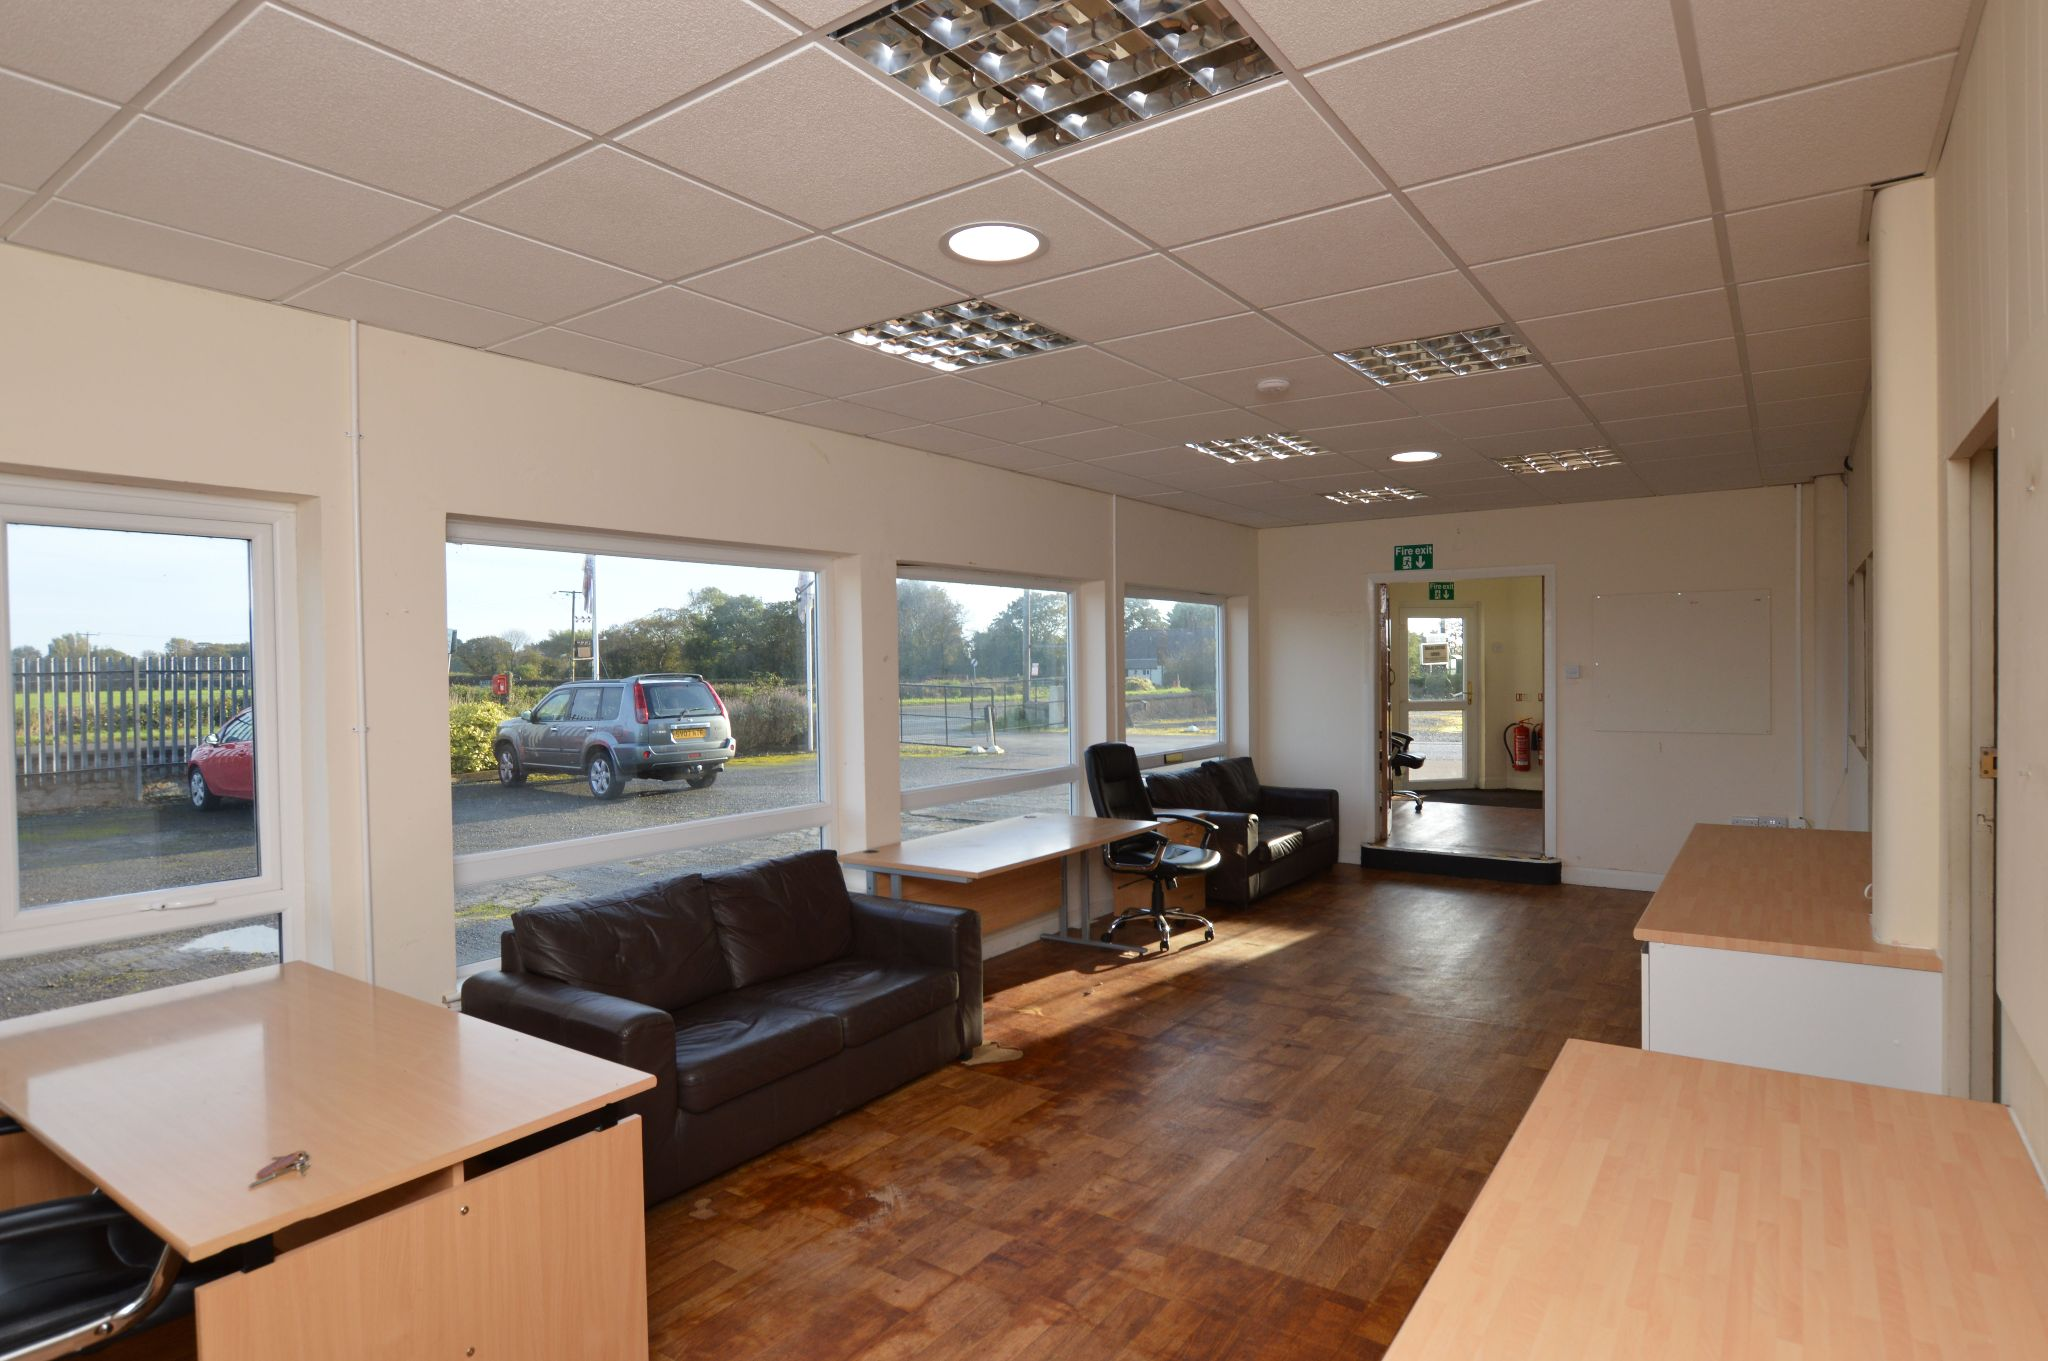 Land For Sale in Holywell - Sales Office View 2